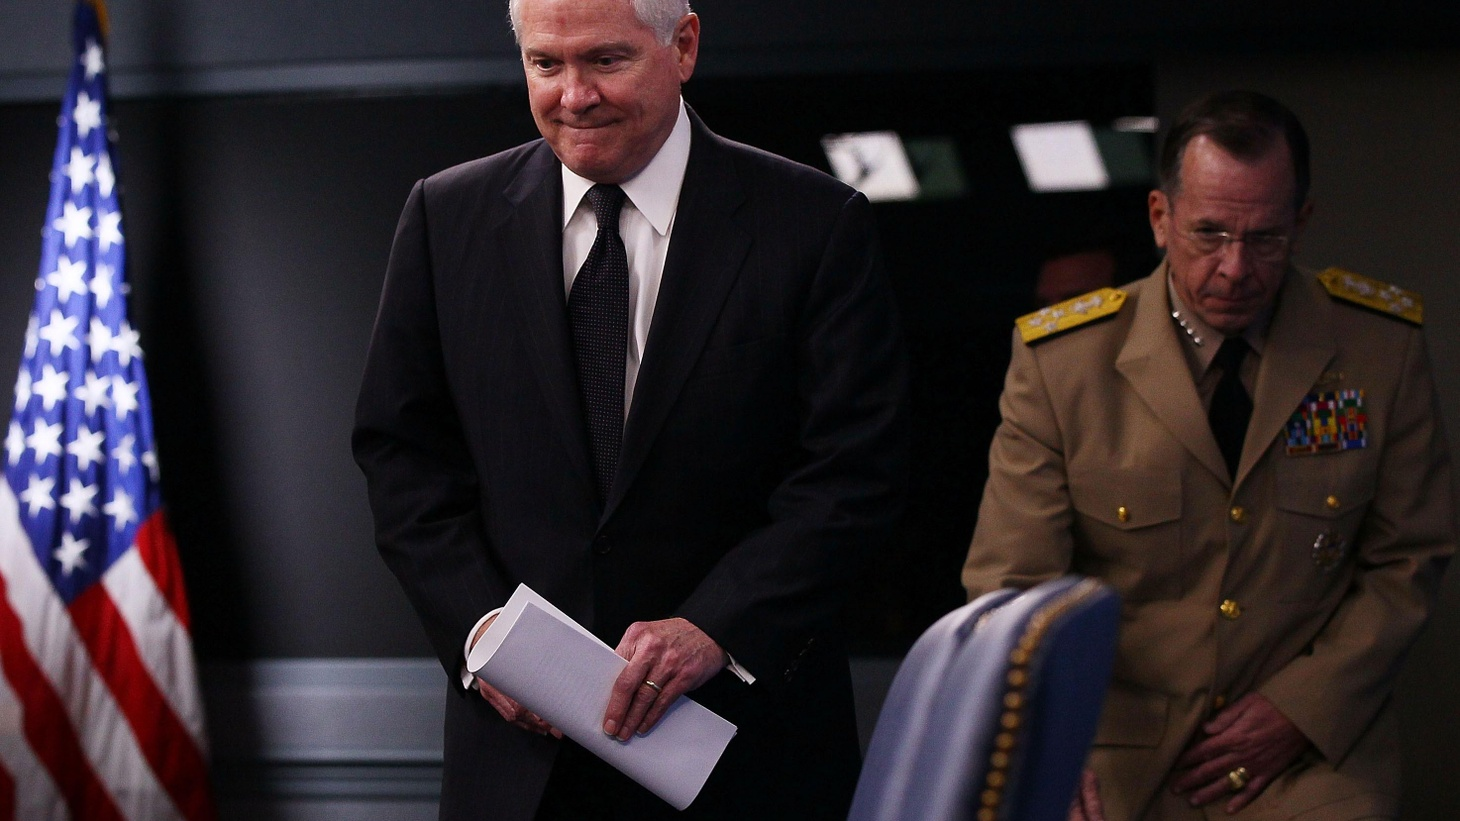 Defense Secretary Robert Gates has advised President Obama to veto spending for projects the Pentagon doesn't want. But Gate's own proposals mean the Defense Budget might not decline after all. Are tough questions about the growing deficit going unanswered? Also, South Korea seeks UN Action against Pyongyang, and Facebook, sharing and privacy.